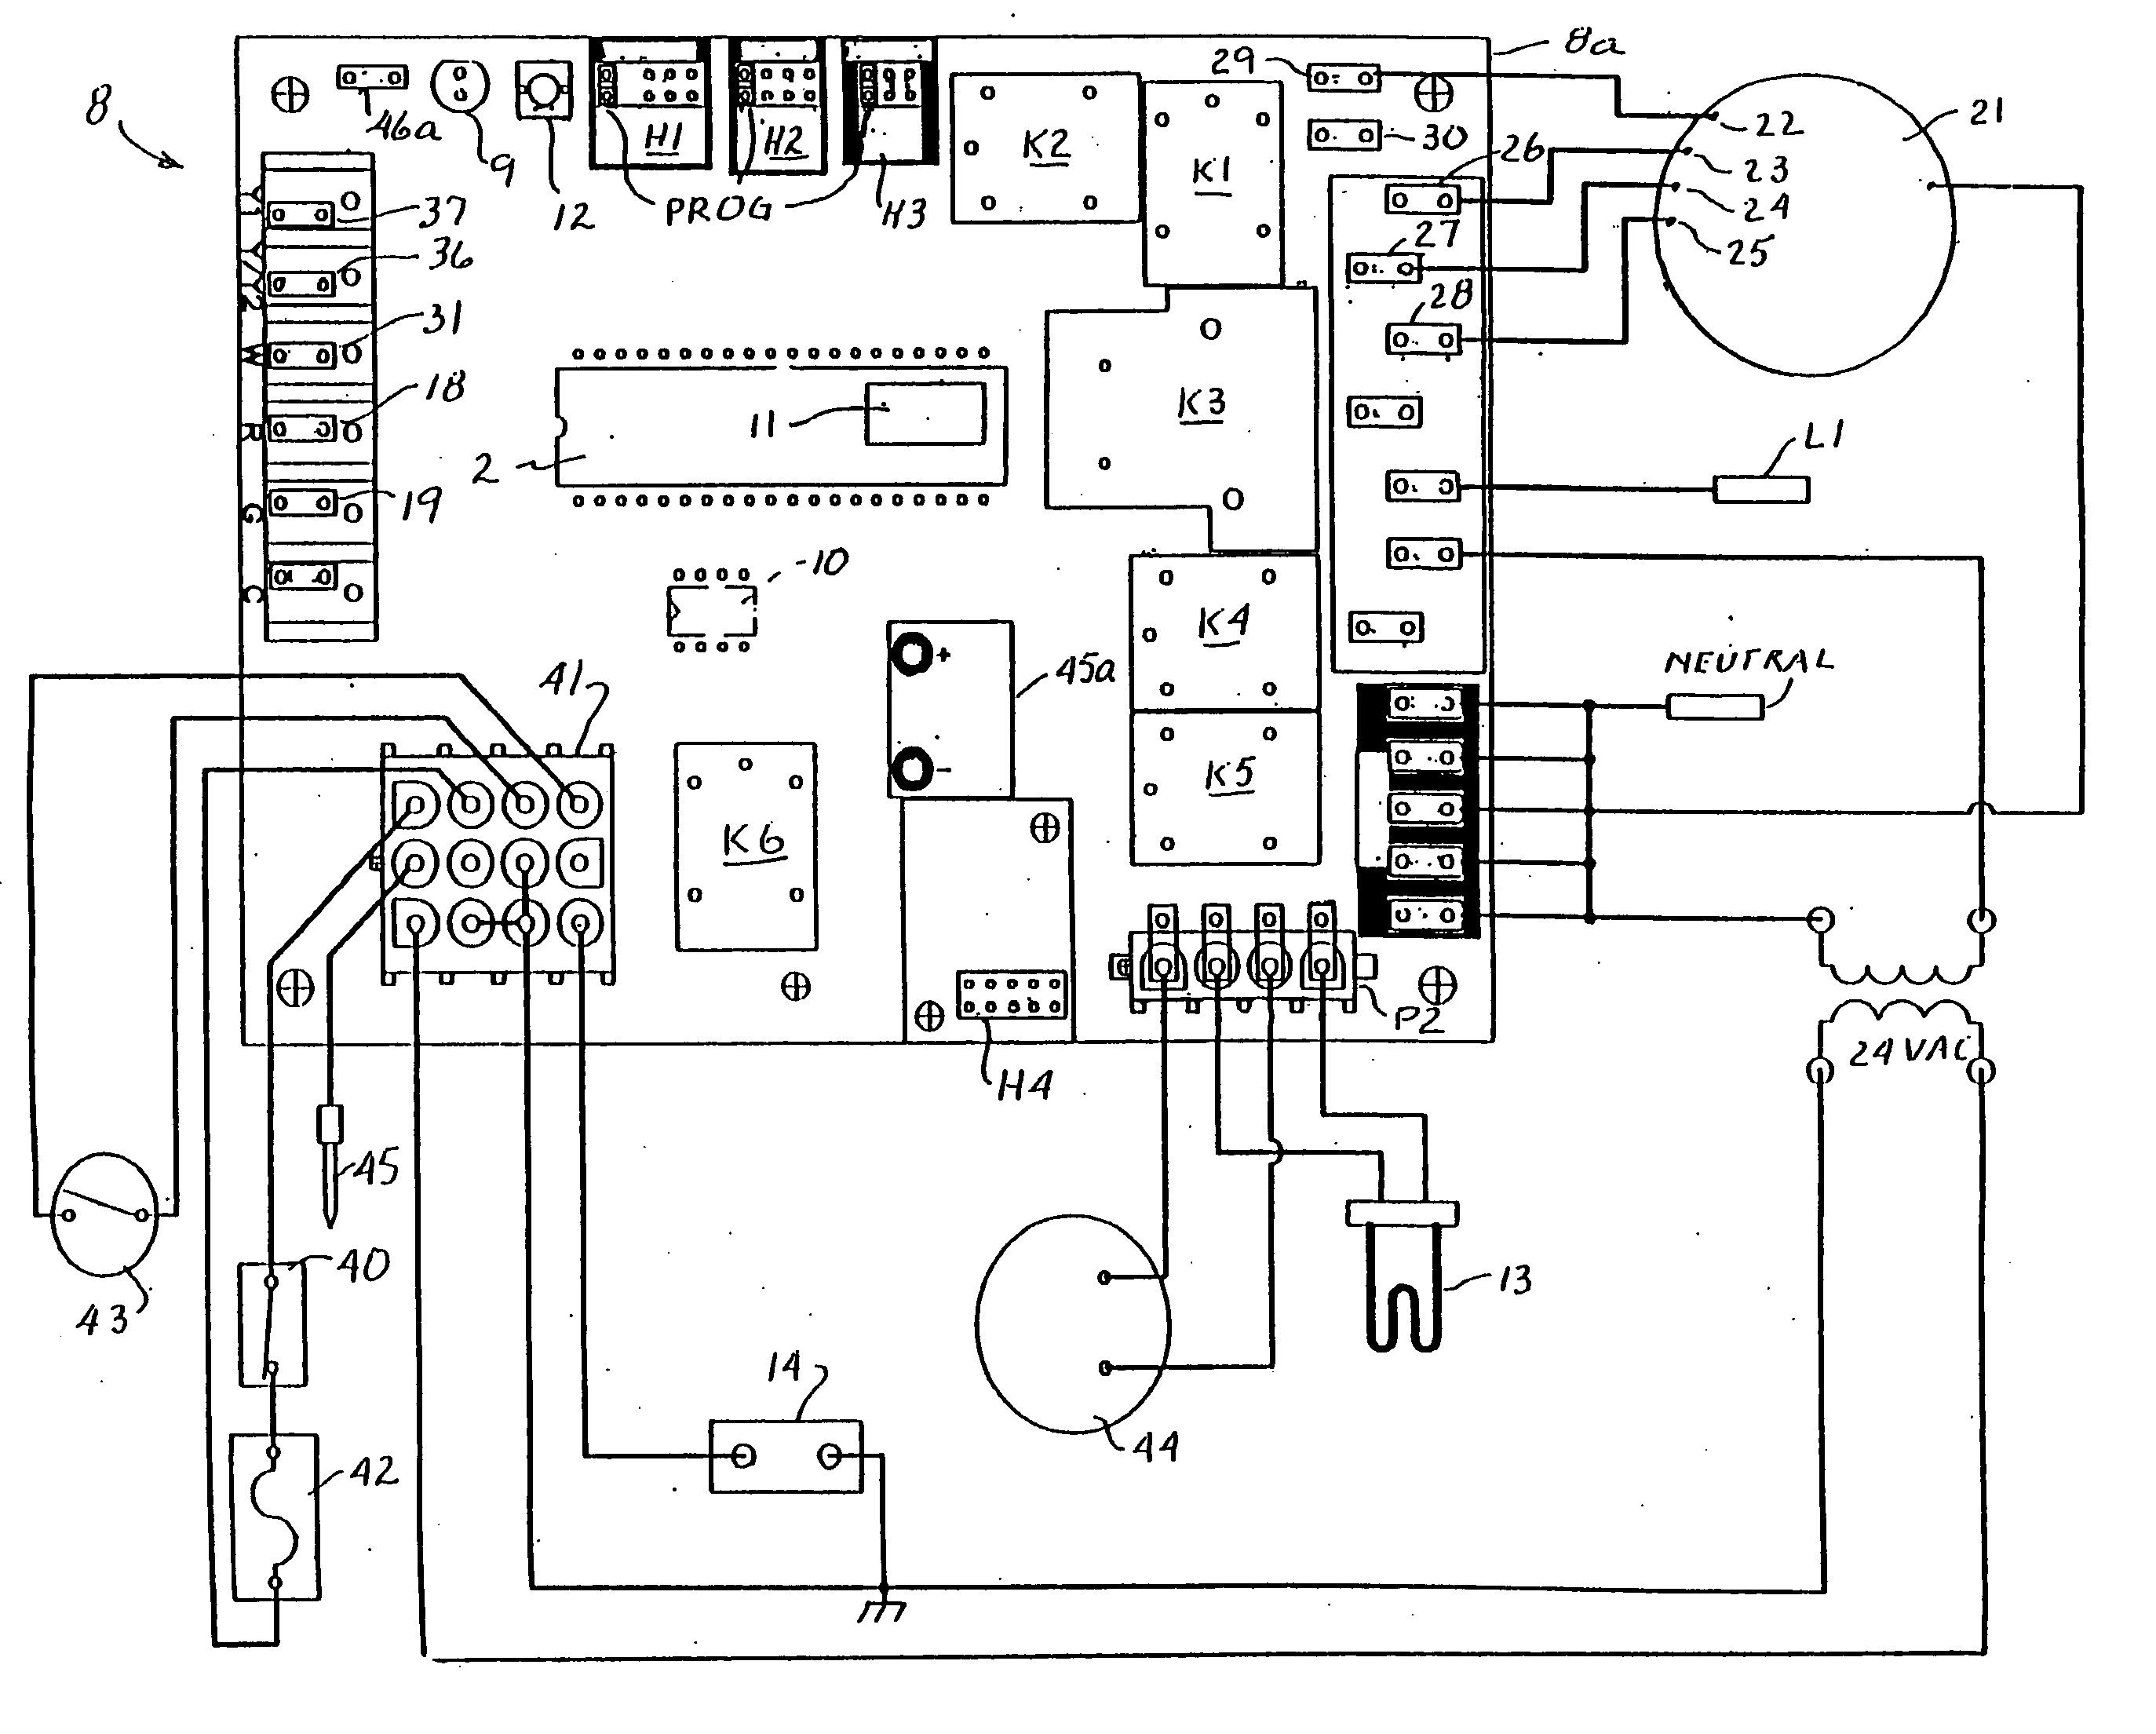 Heil Gas Furnace Control Board Wiring Diagram 45 Mobile Home Thermostat Us20040230402a1 20041118 D00000 Acc0436 Older